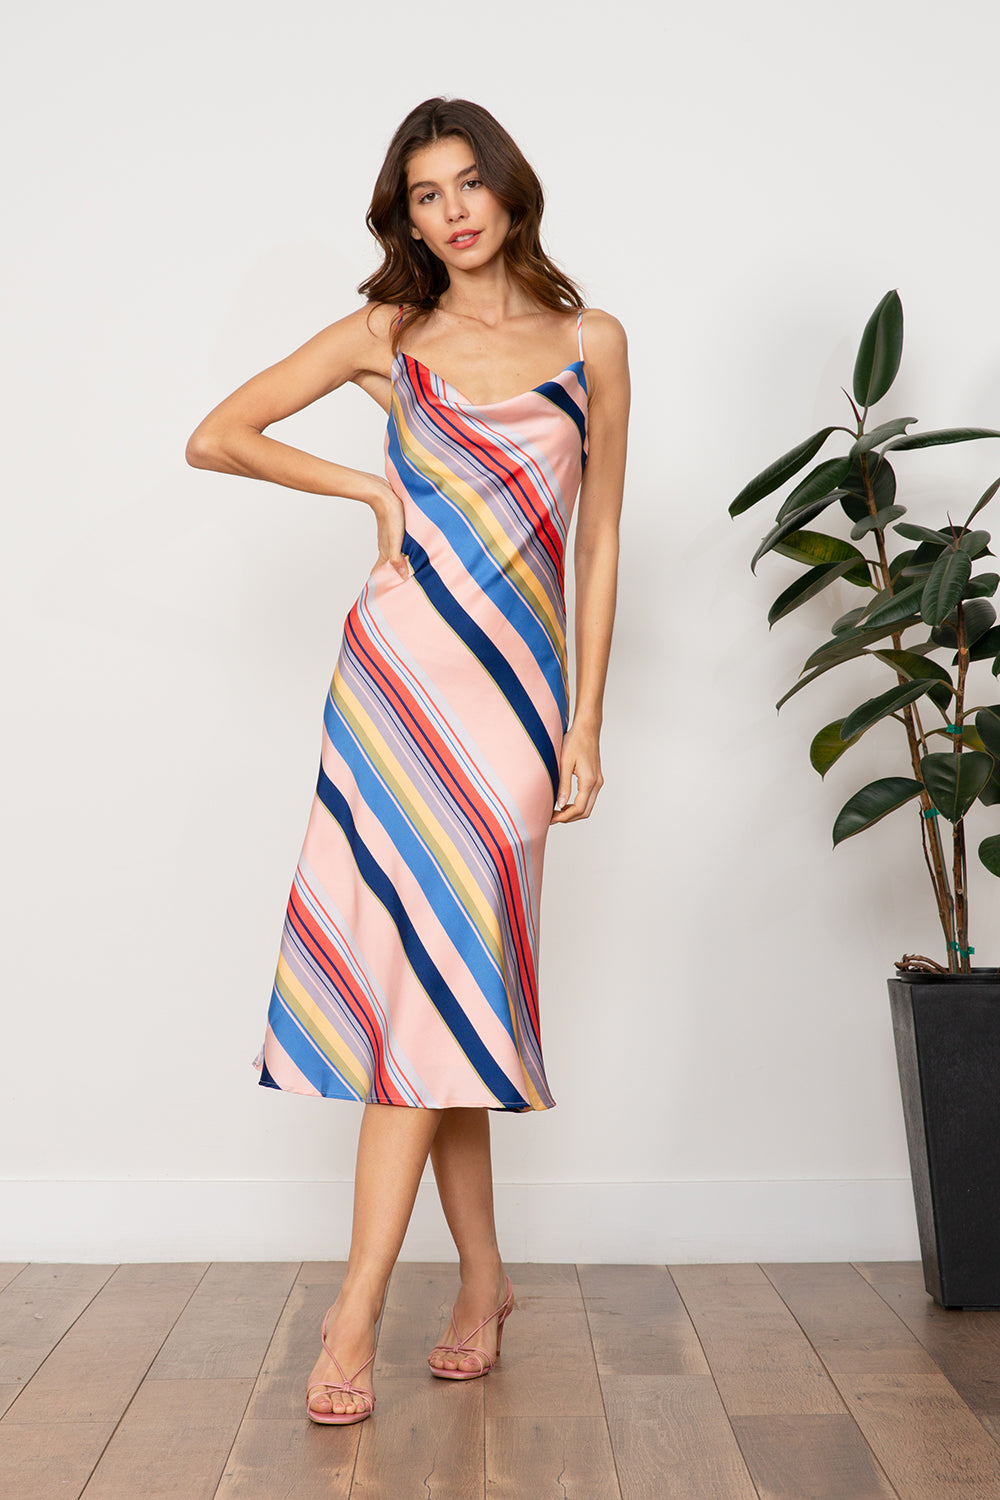 LUCY PARIS - Sienna Rainbow Dress